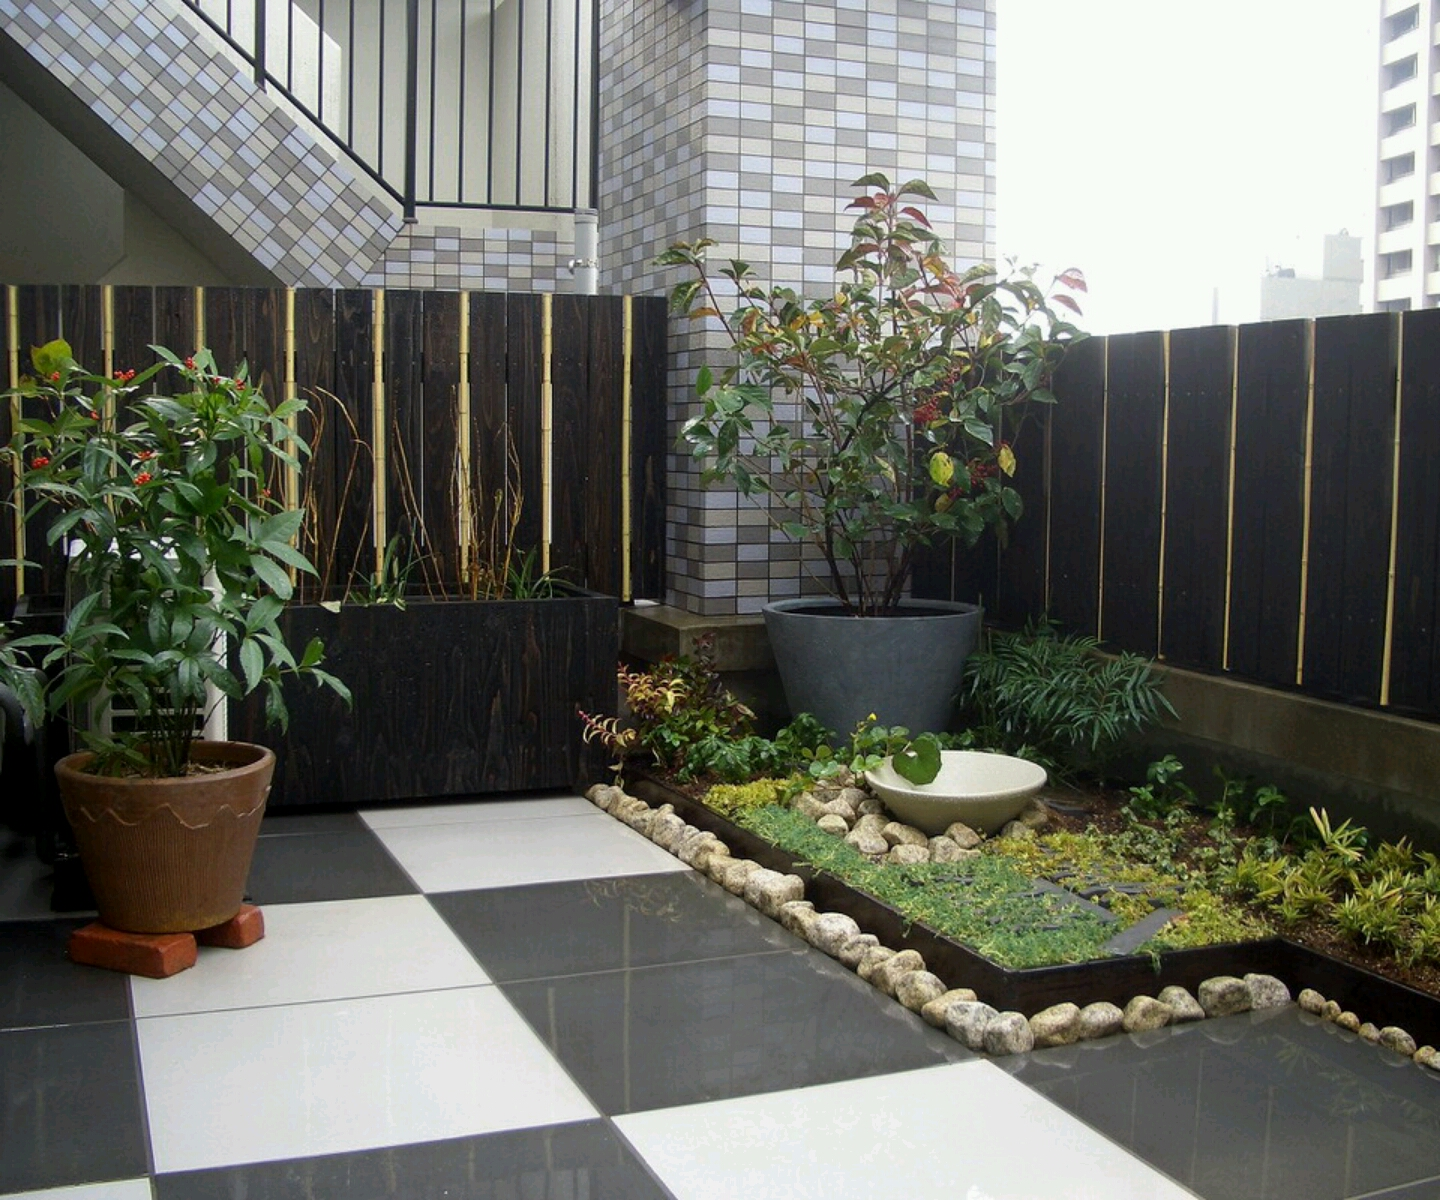 Ultra modern garden design inspiration interior designs for Modern house garden